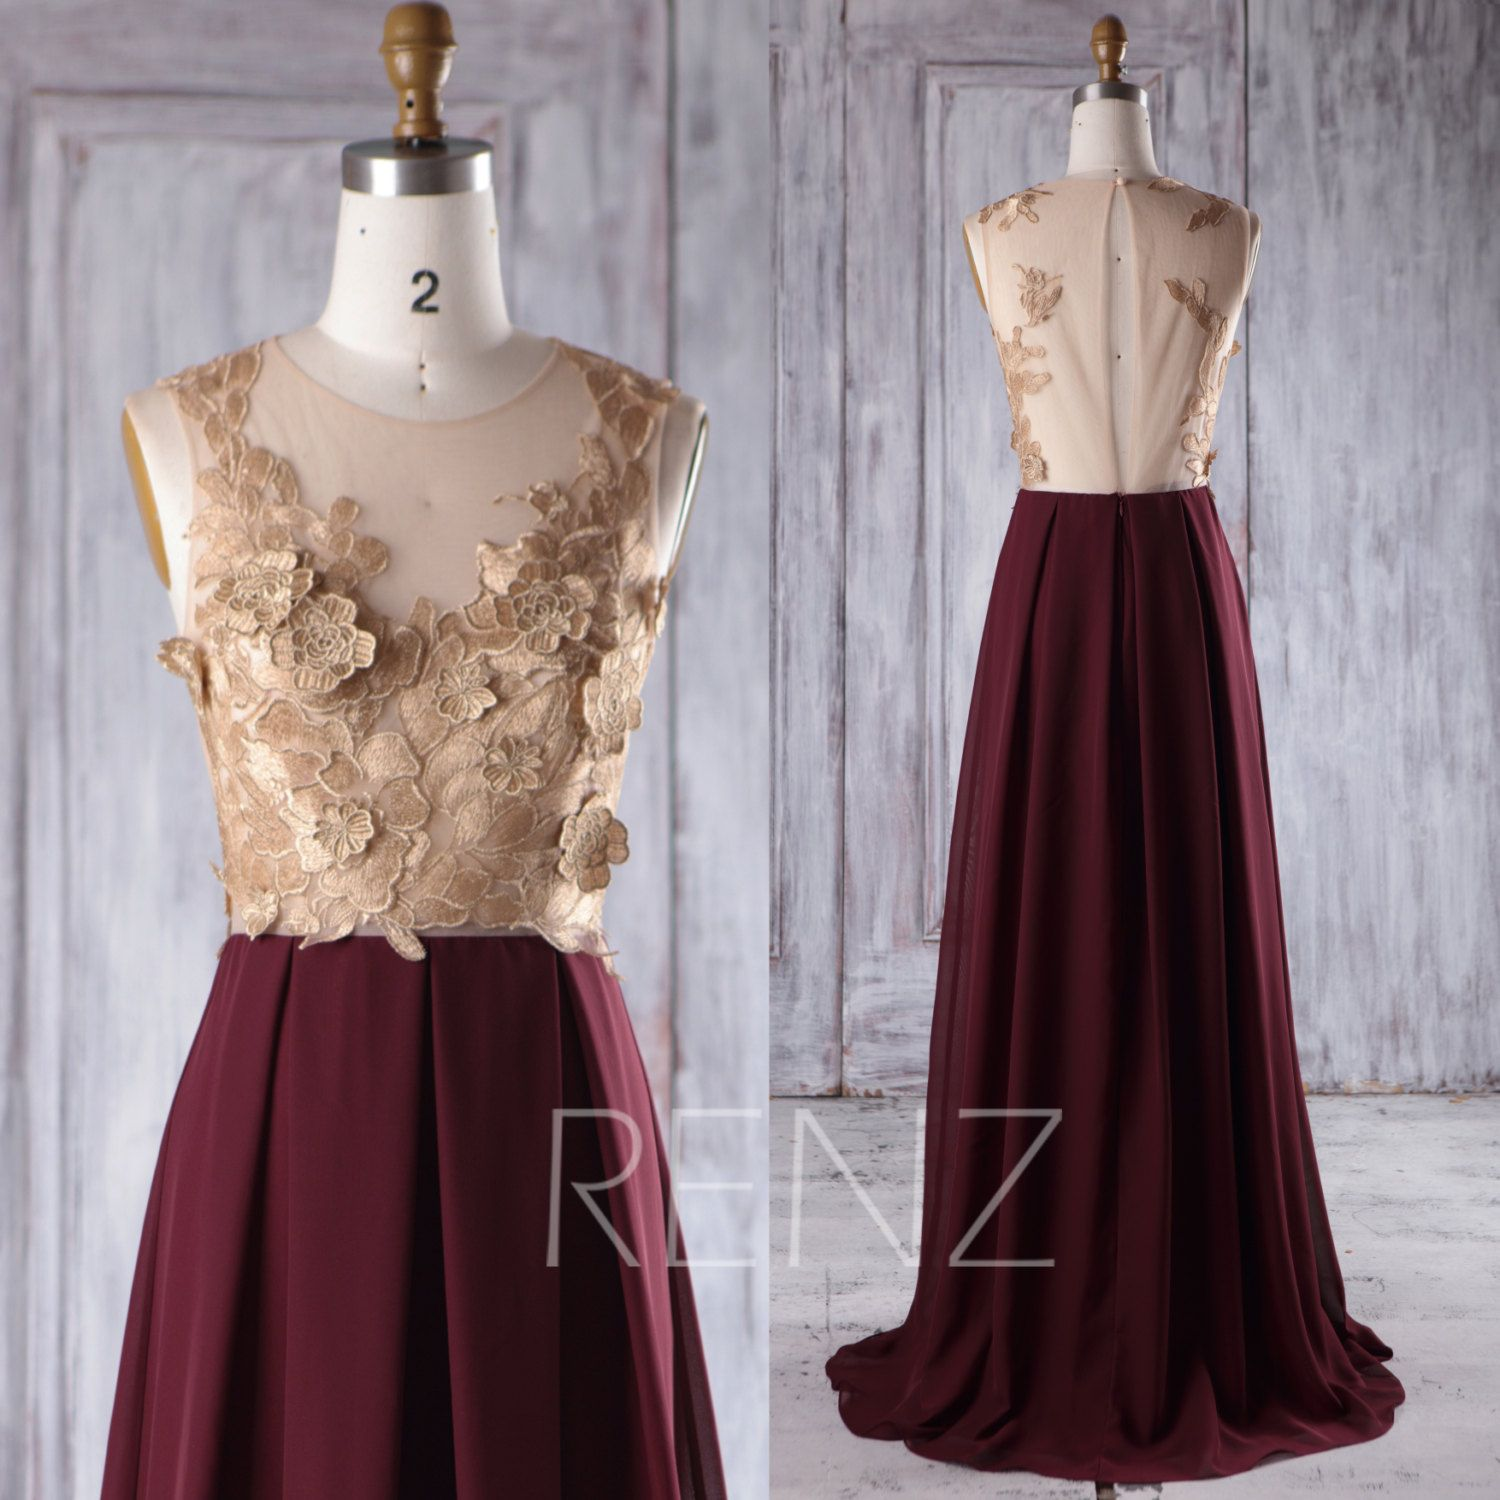 Rose gold lace bridesmaid dress long maroon chiffon wedding dress